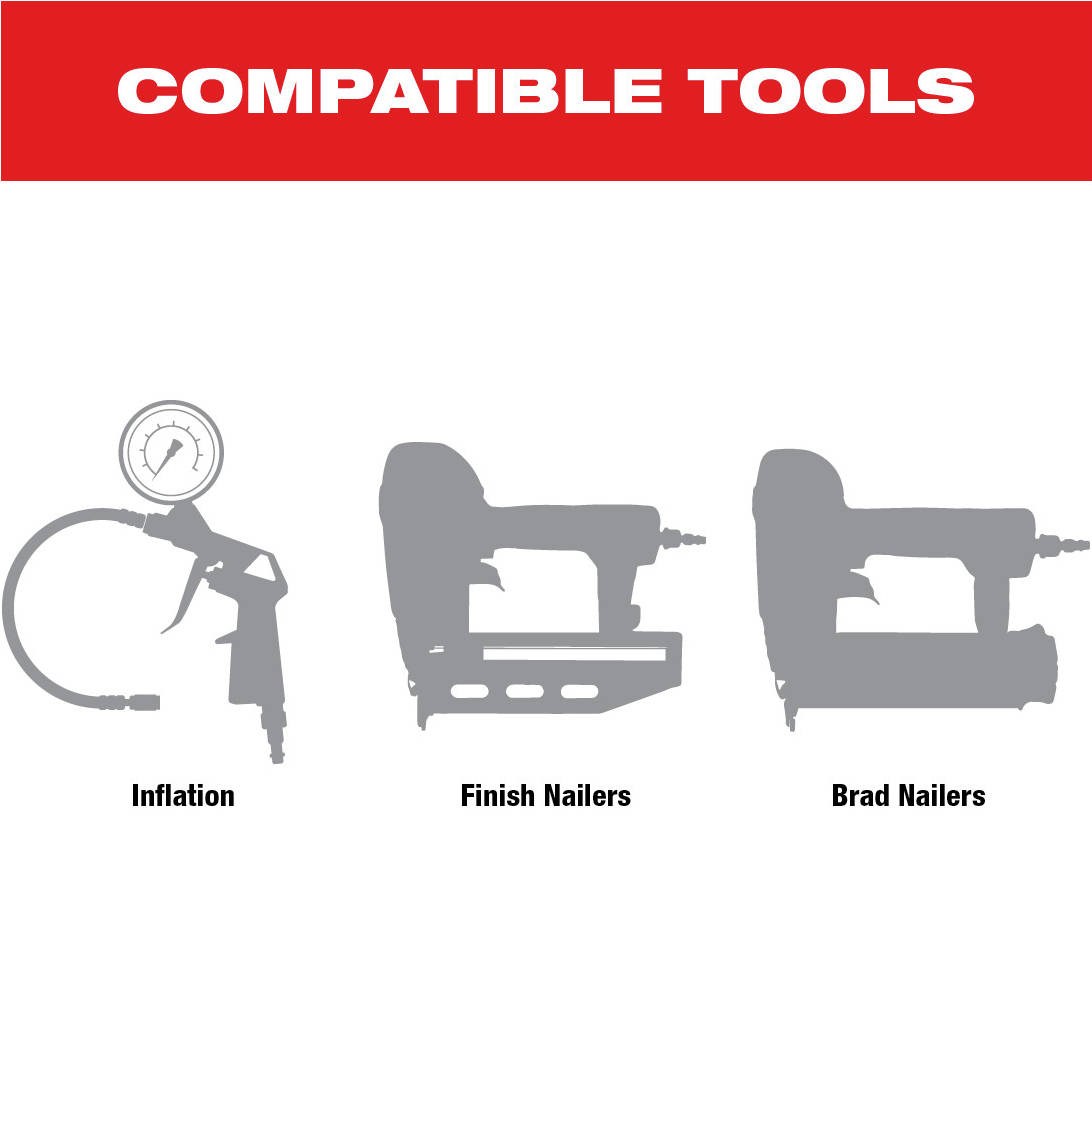 M18 Compressor is compatible with a variety of tools